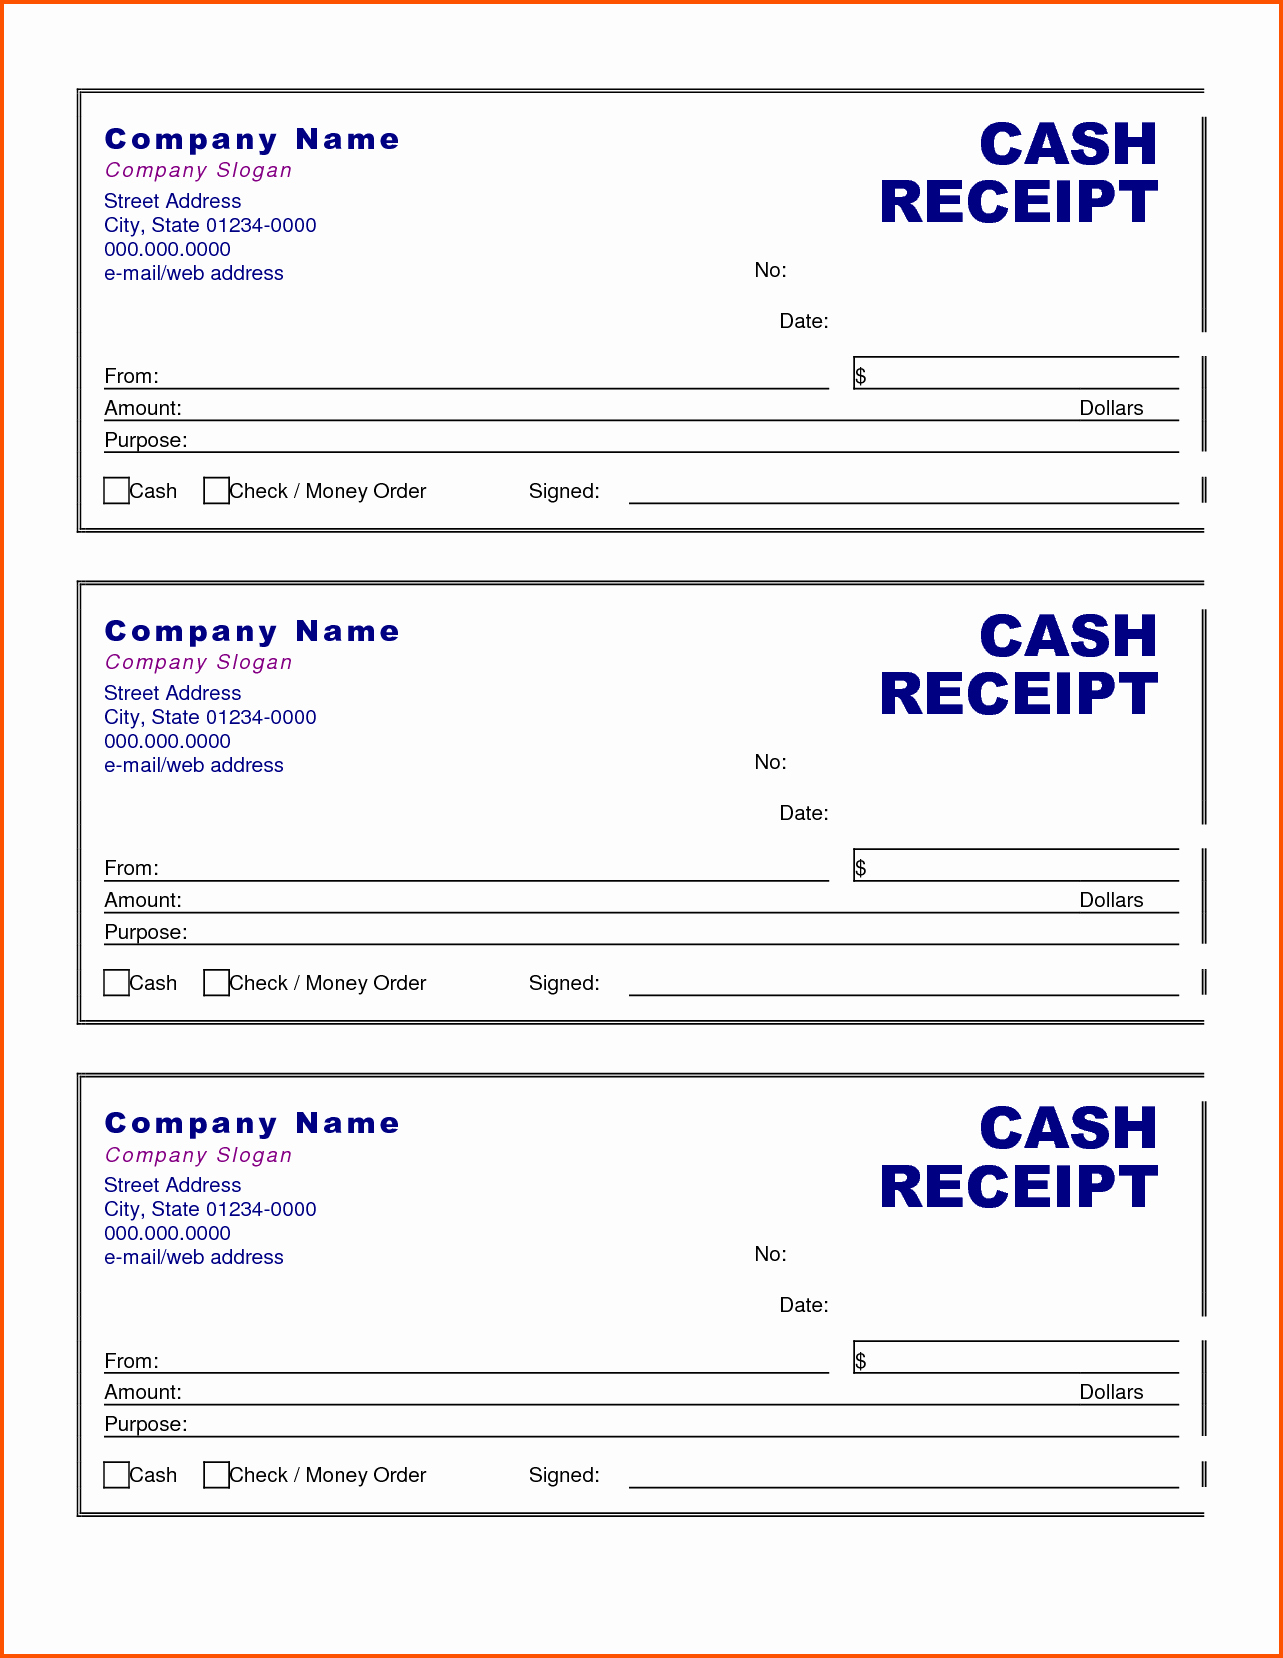 Cash Receipt format In Excel Lovely Cash Receipt form Examples Vatansun